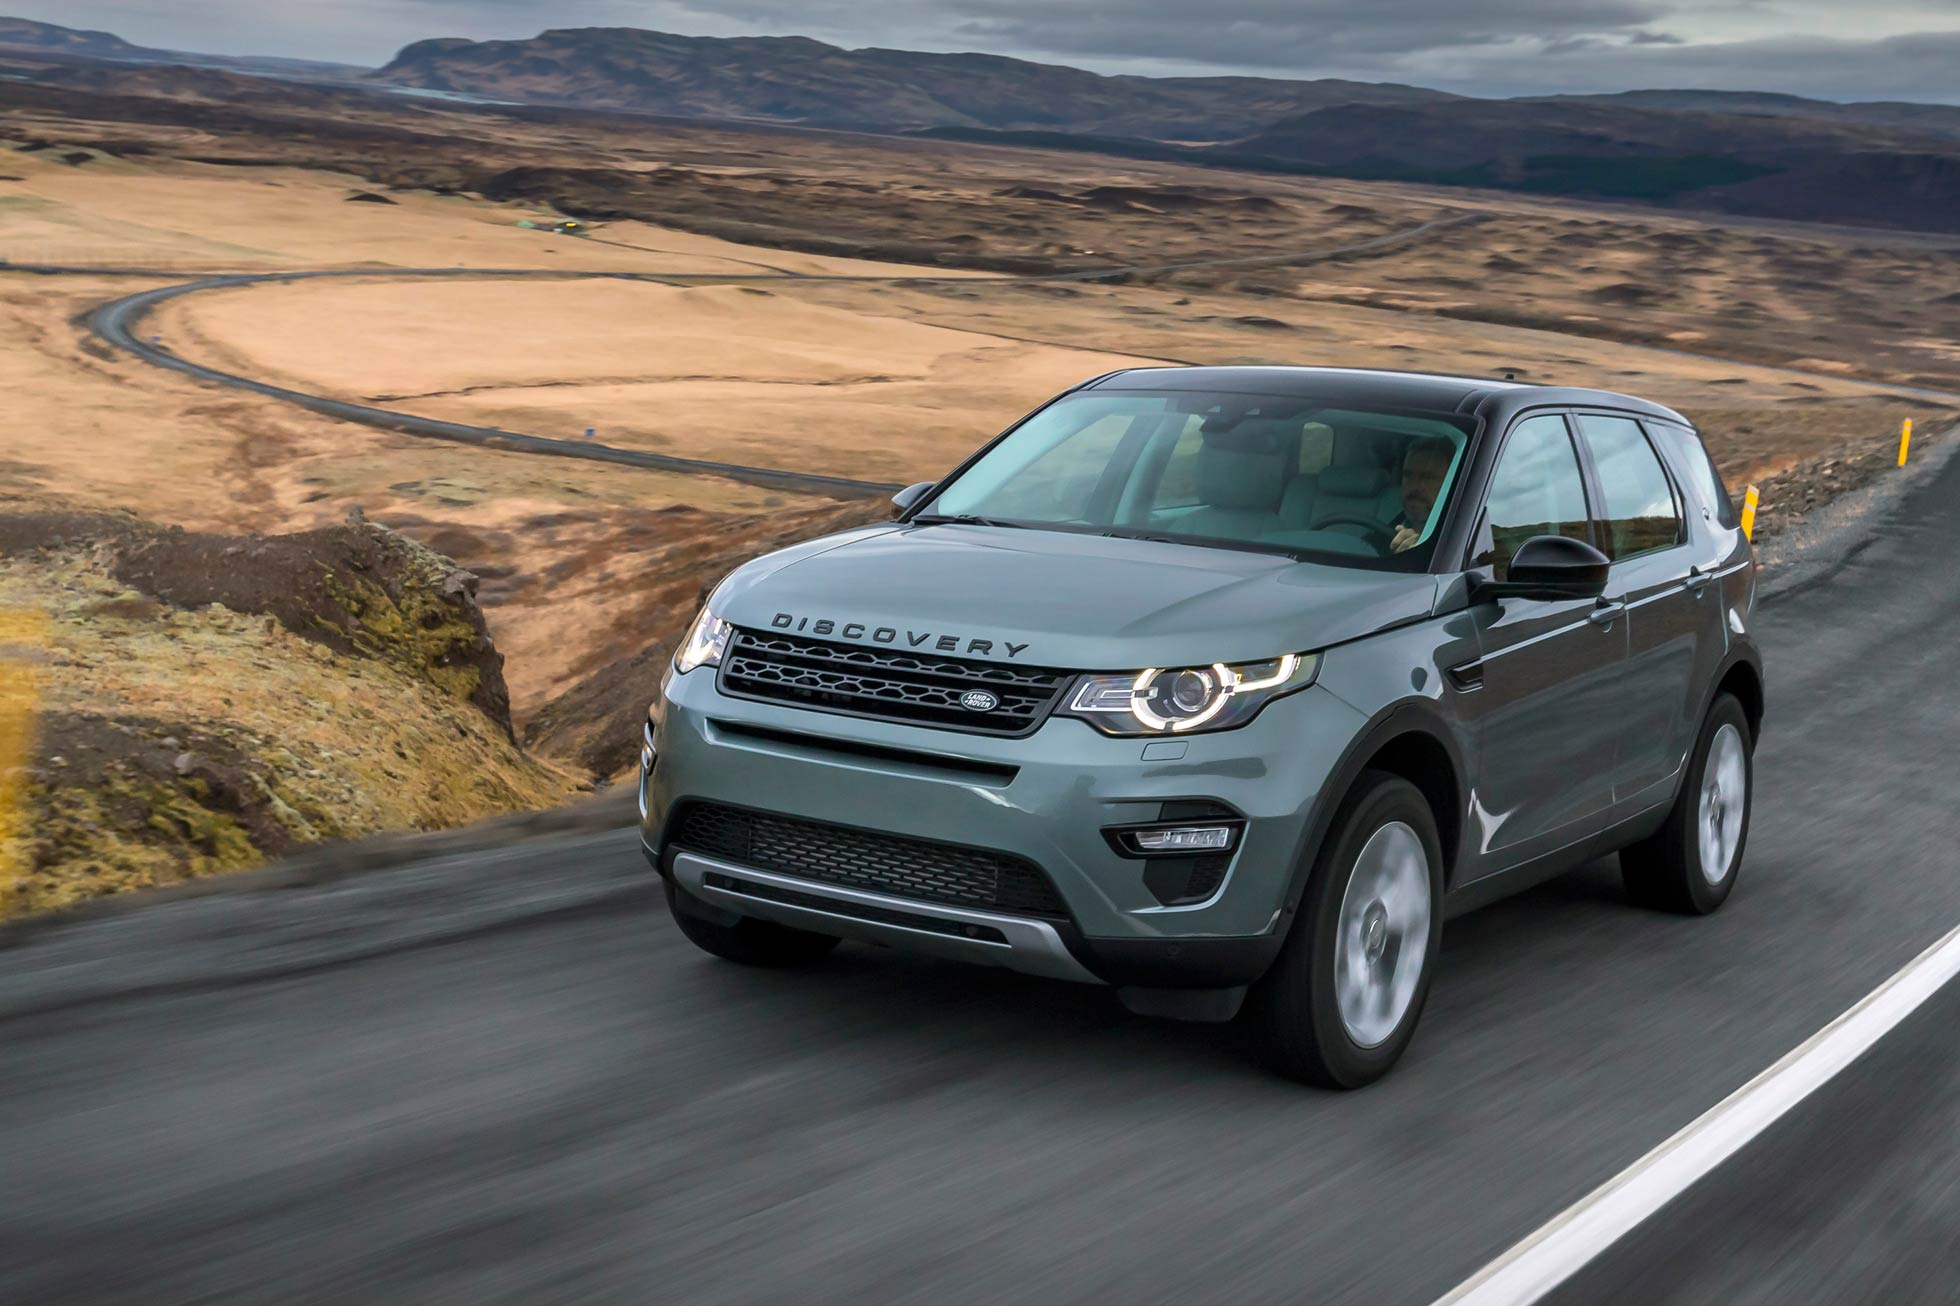 land rover discovery sport motoring research. Black Bedroom Furniture Sets. Home Design Ideas